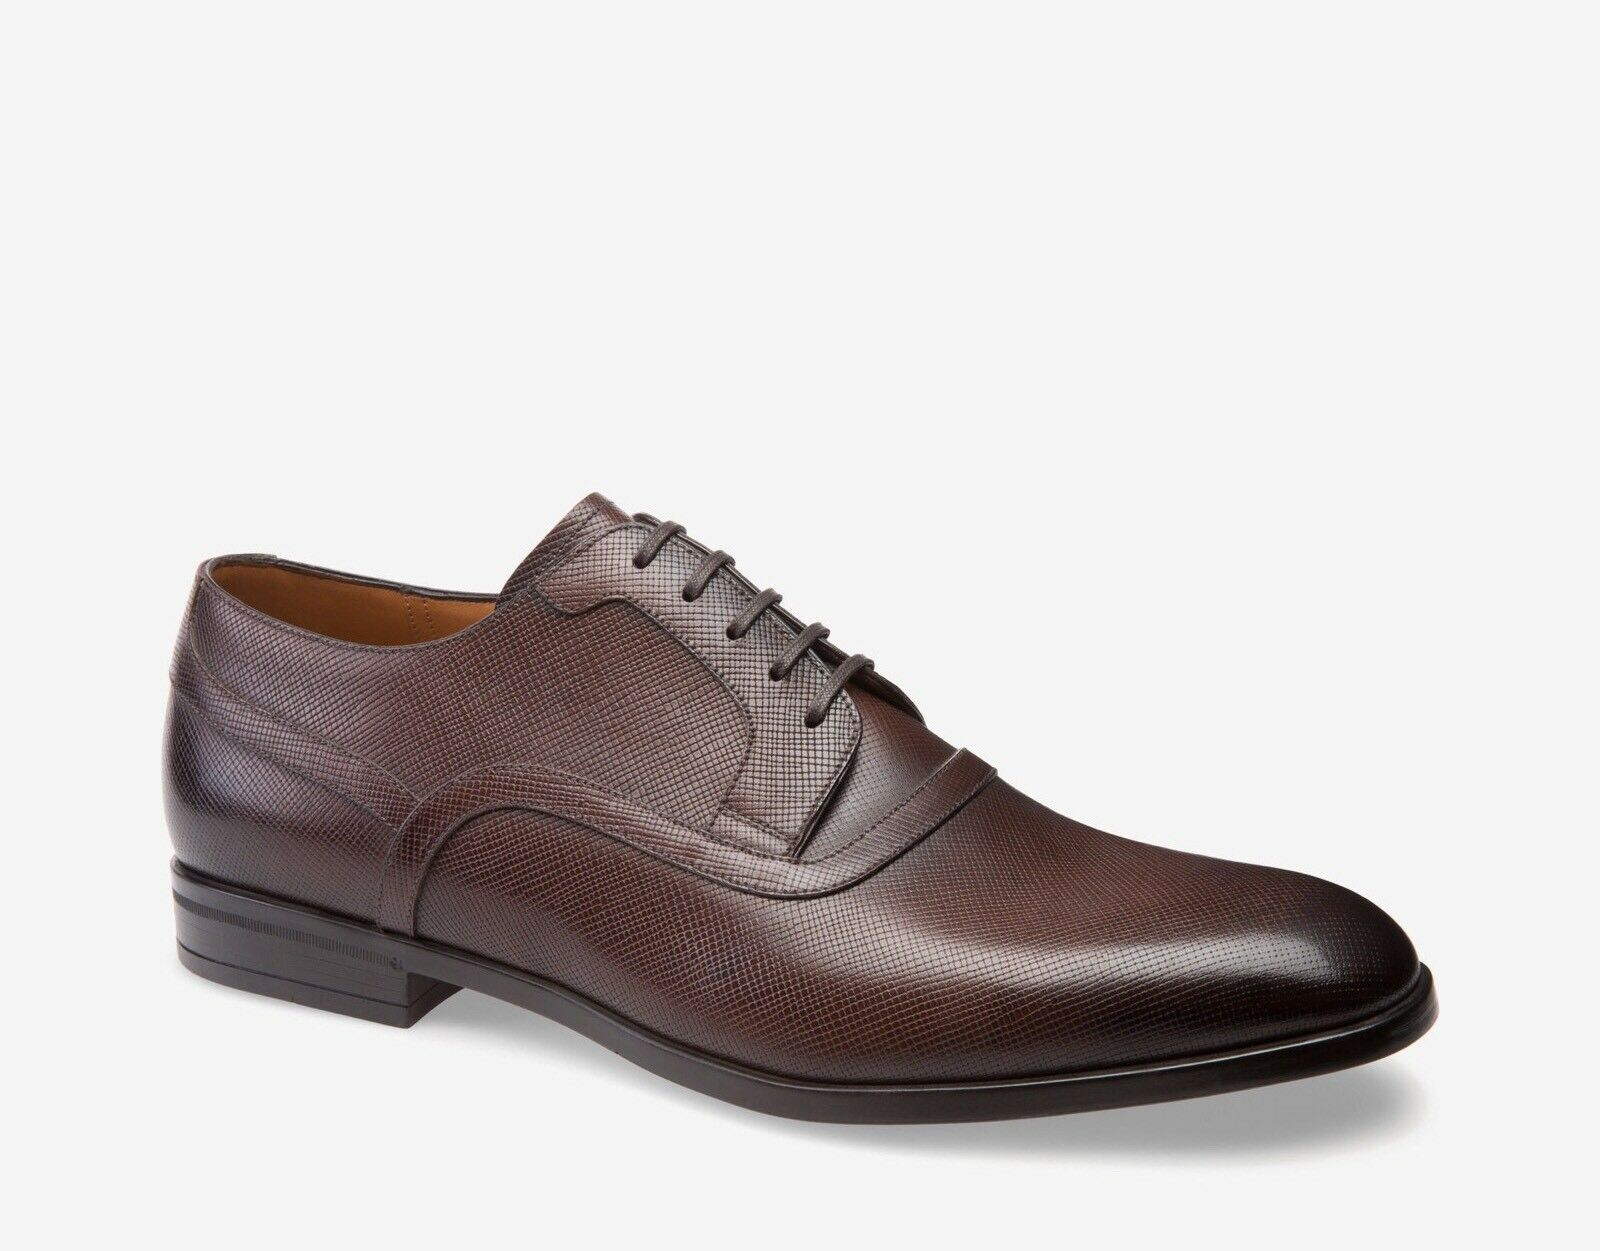 New In Box Bally 'Lauron' Brown Saffiano Leather Derby Lace Ups 10/11 5.00 Scarpe classiche da uomo